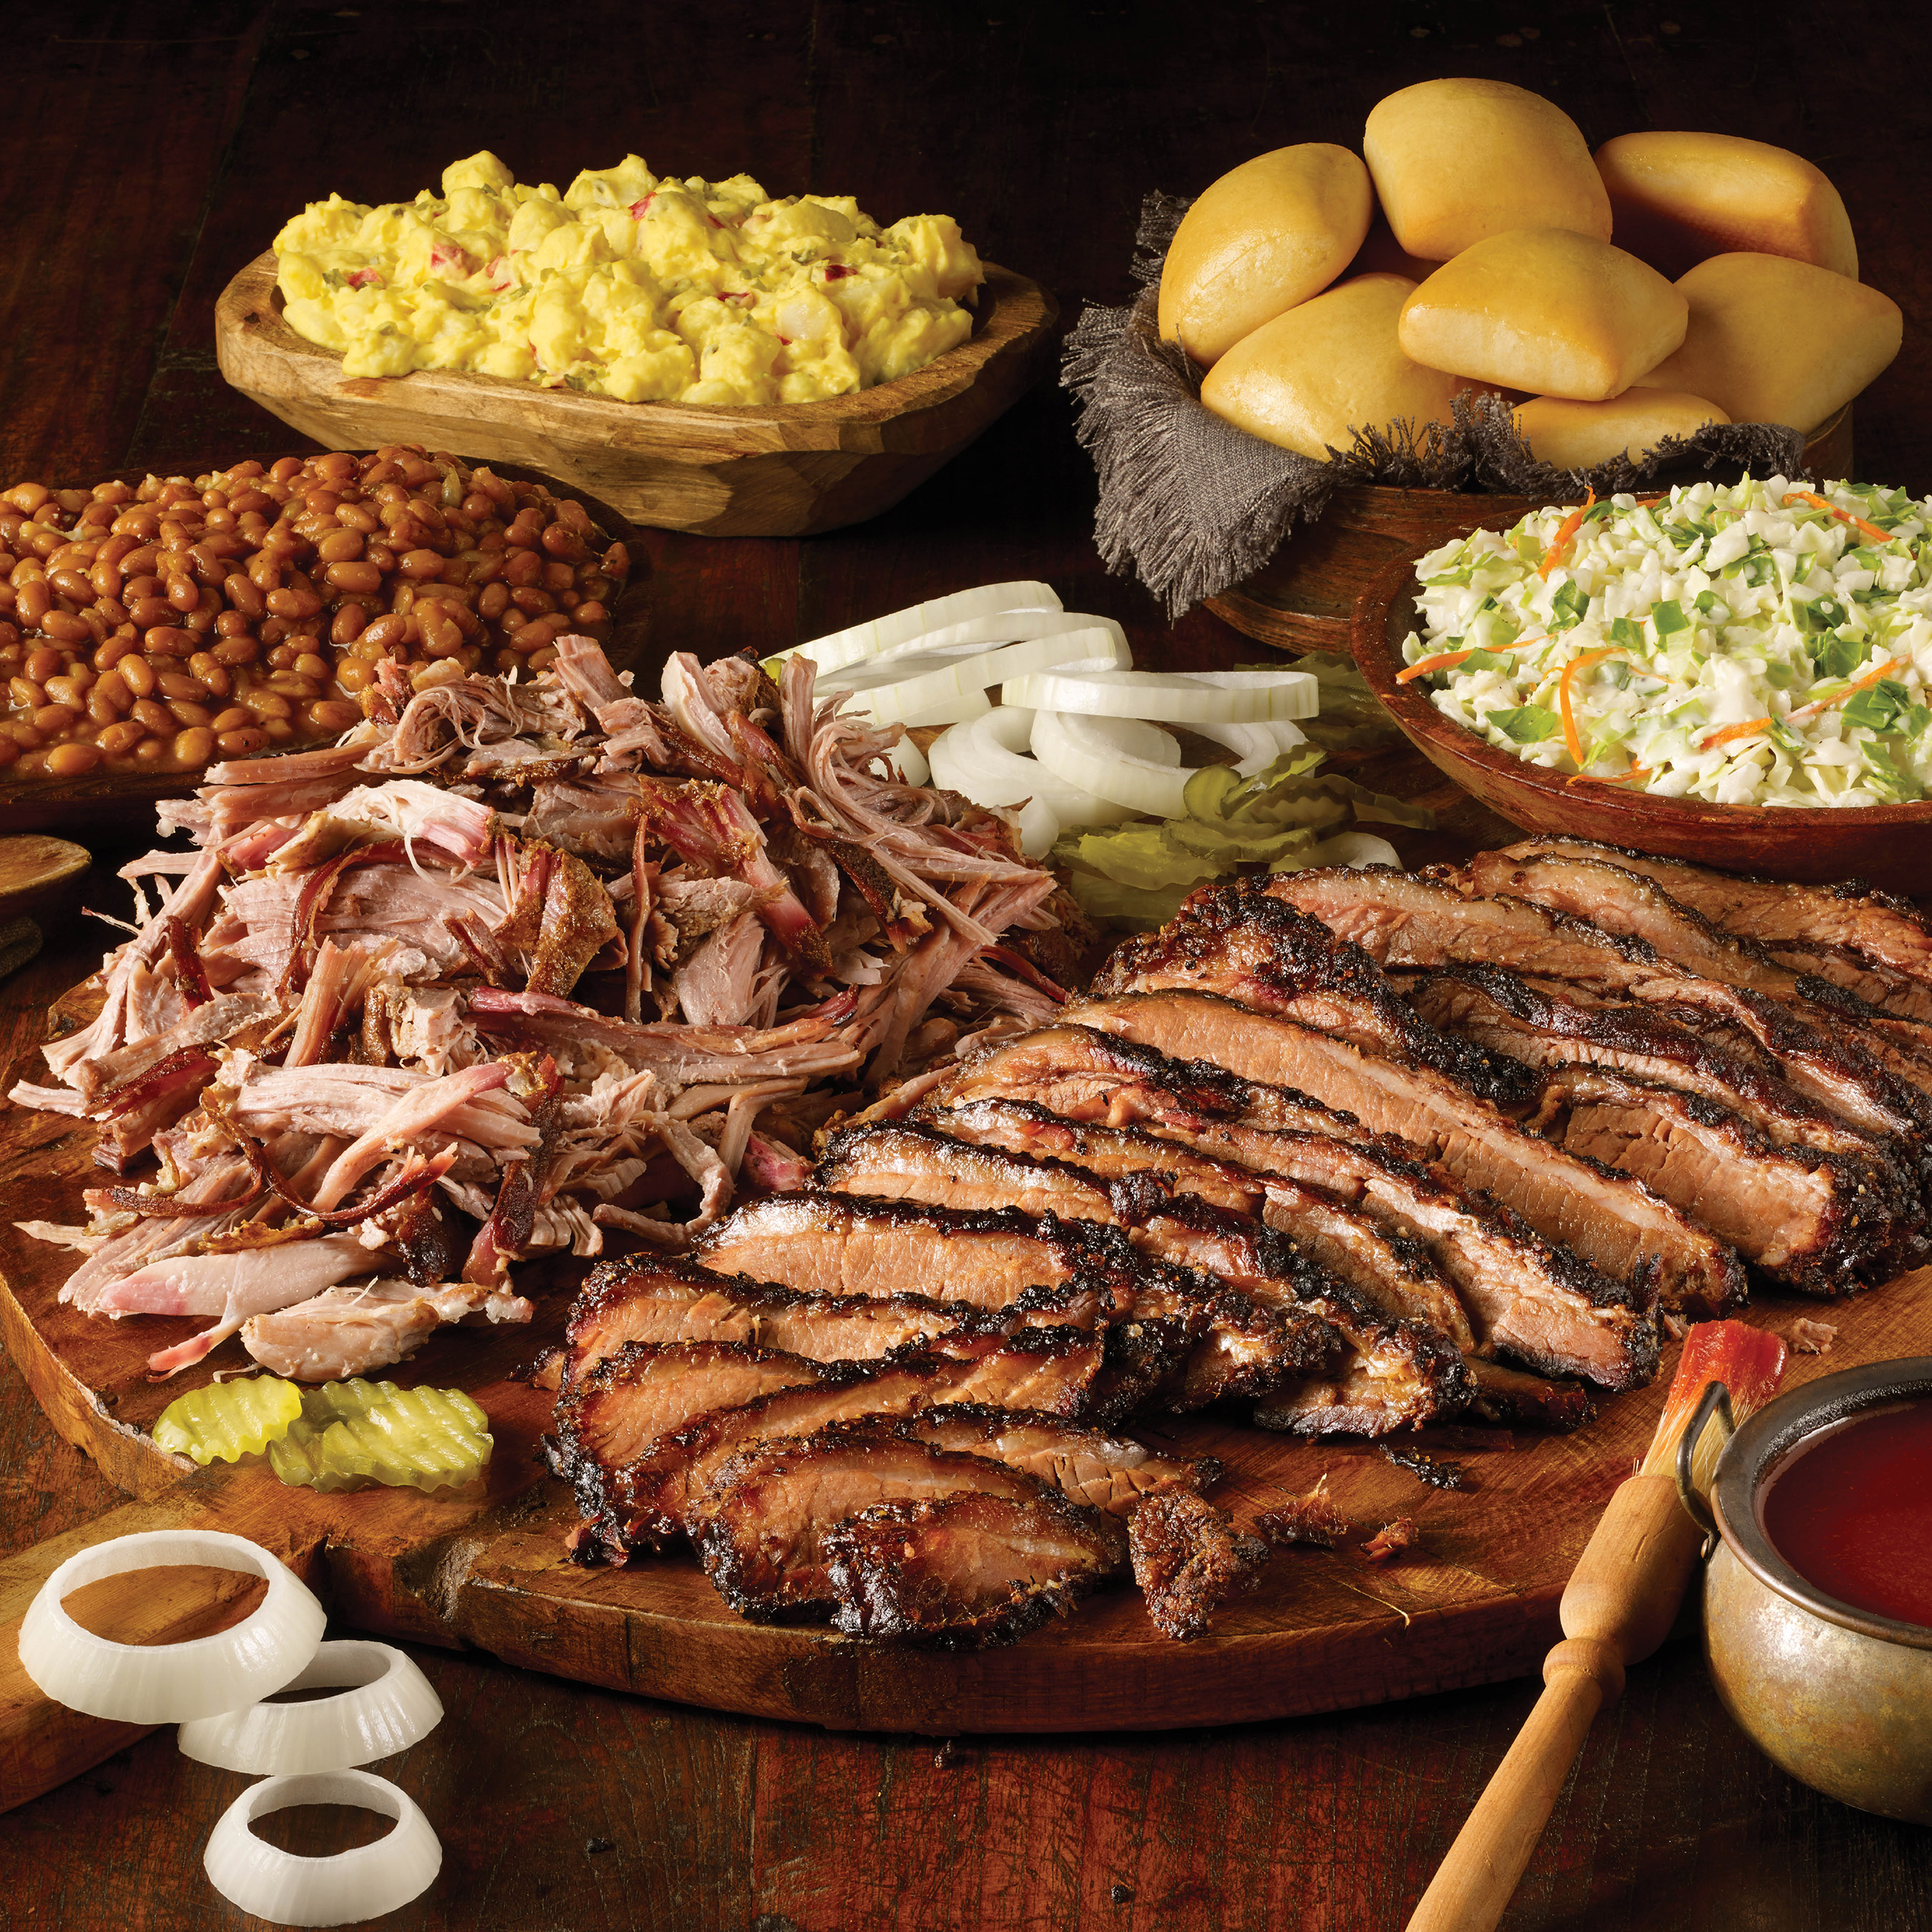 Dickey's offers guests the perfect meal option for any size gathering